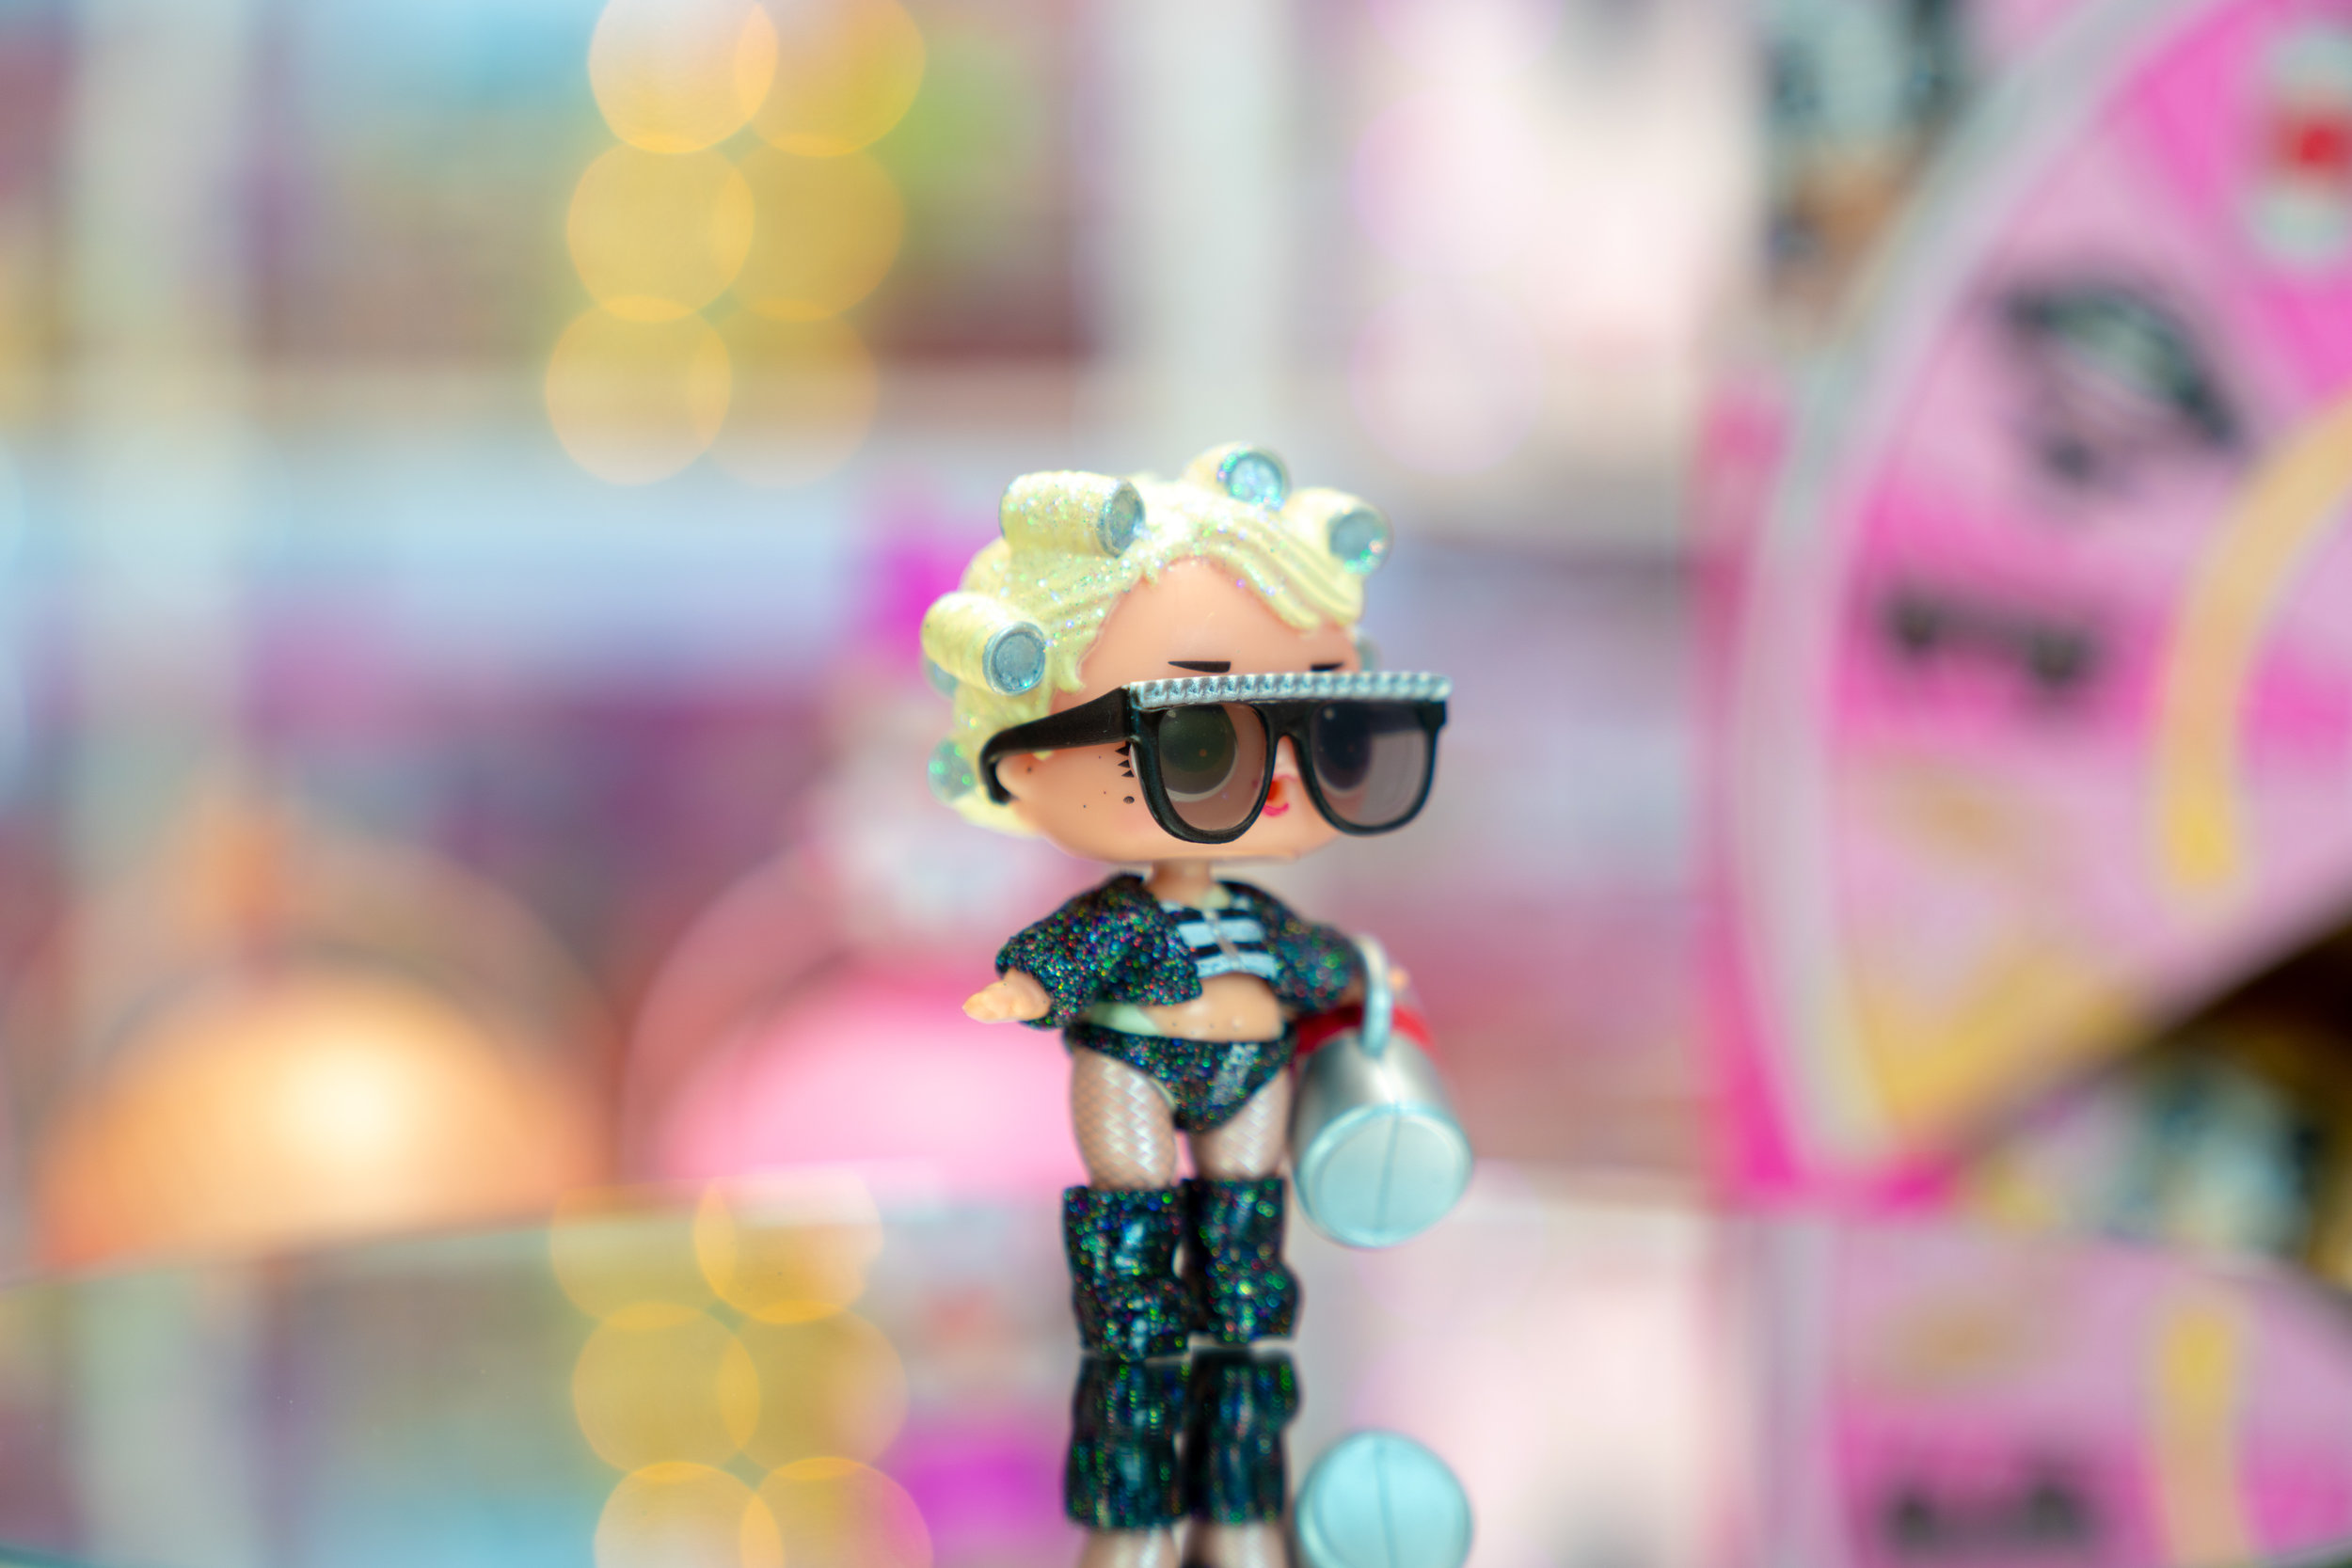 Goo Goo Queen Phdbb Wave 2 Lol Surprise Confetti Pop Series 3